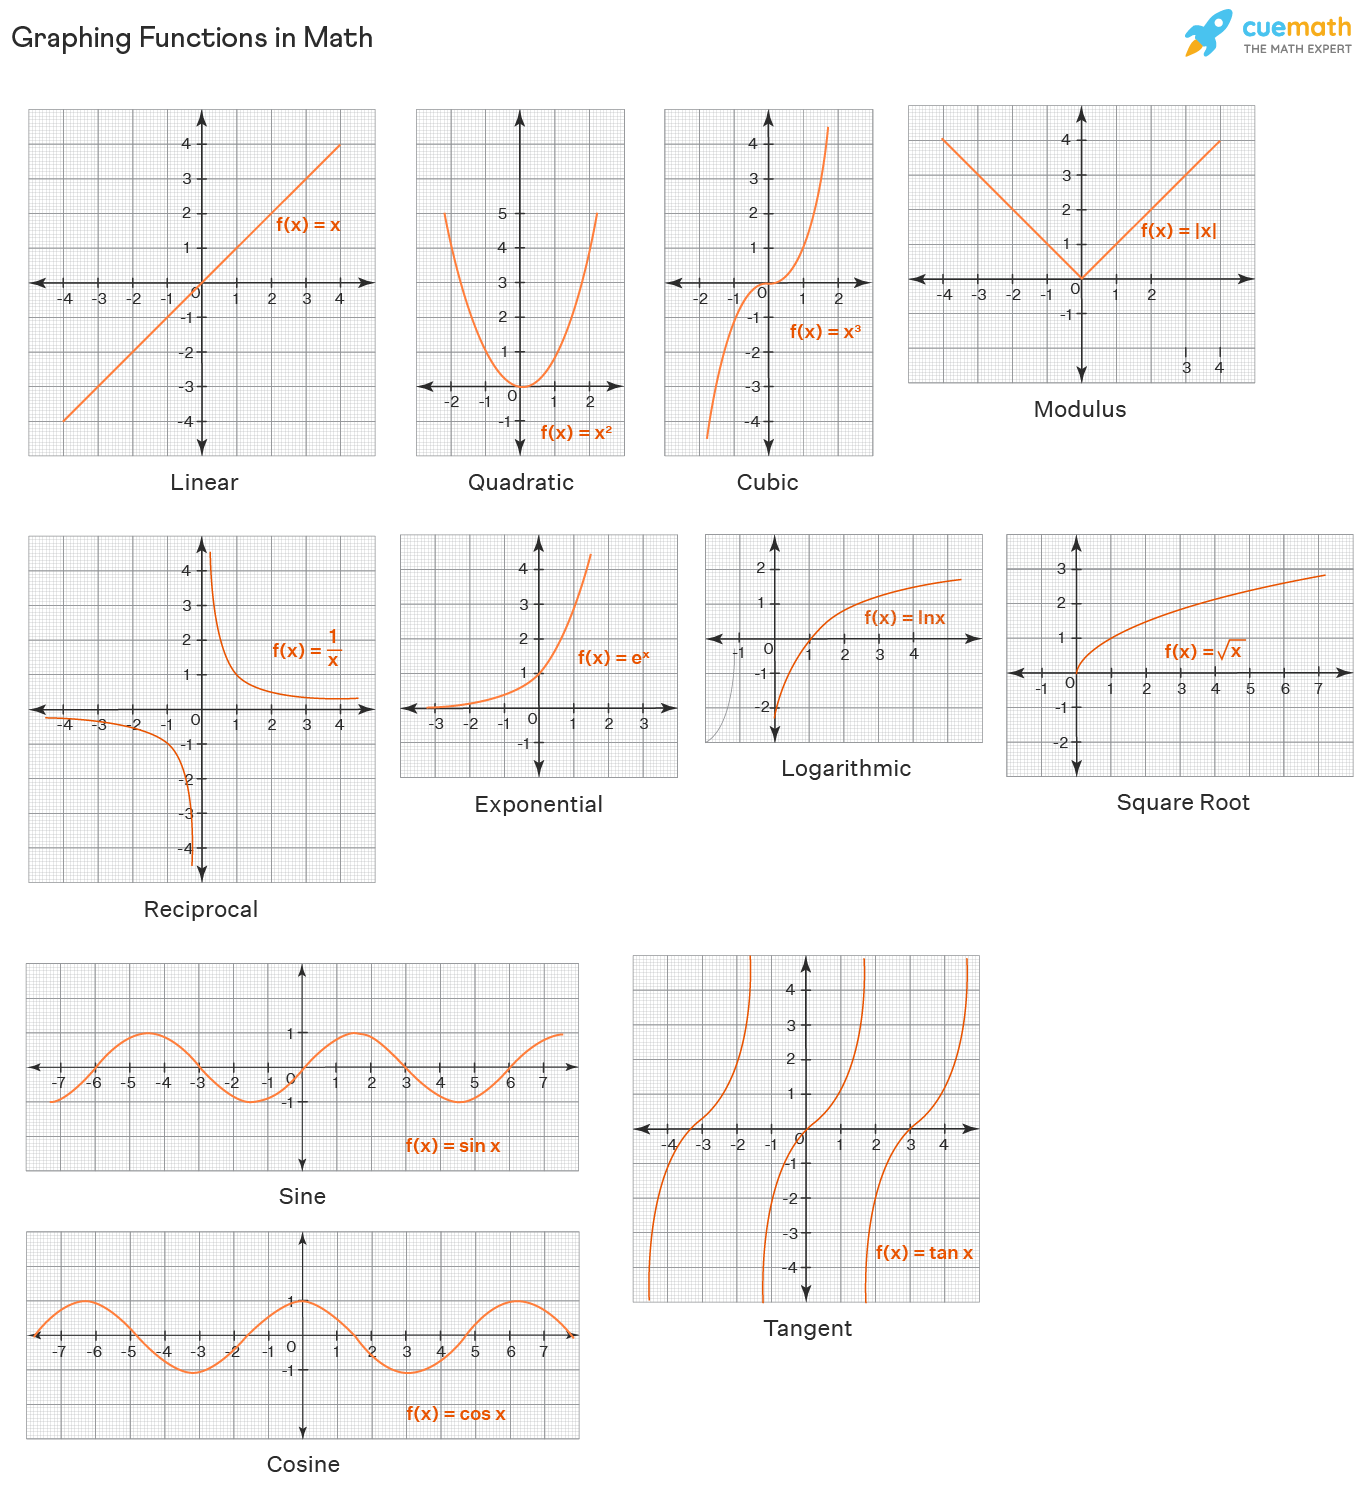 graphing functions in math